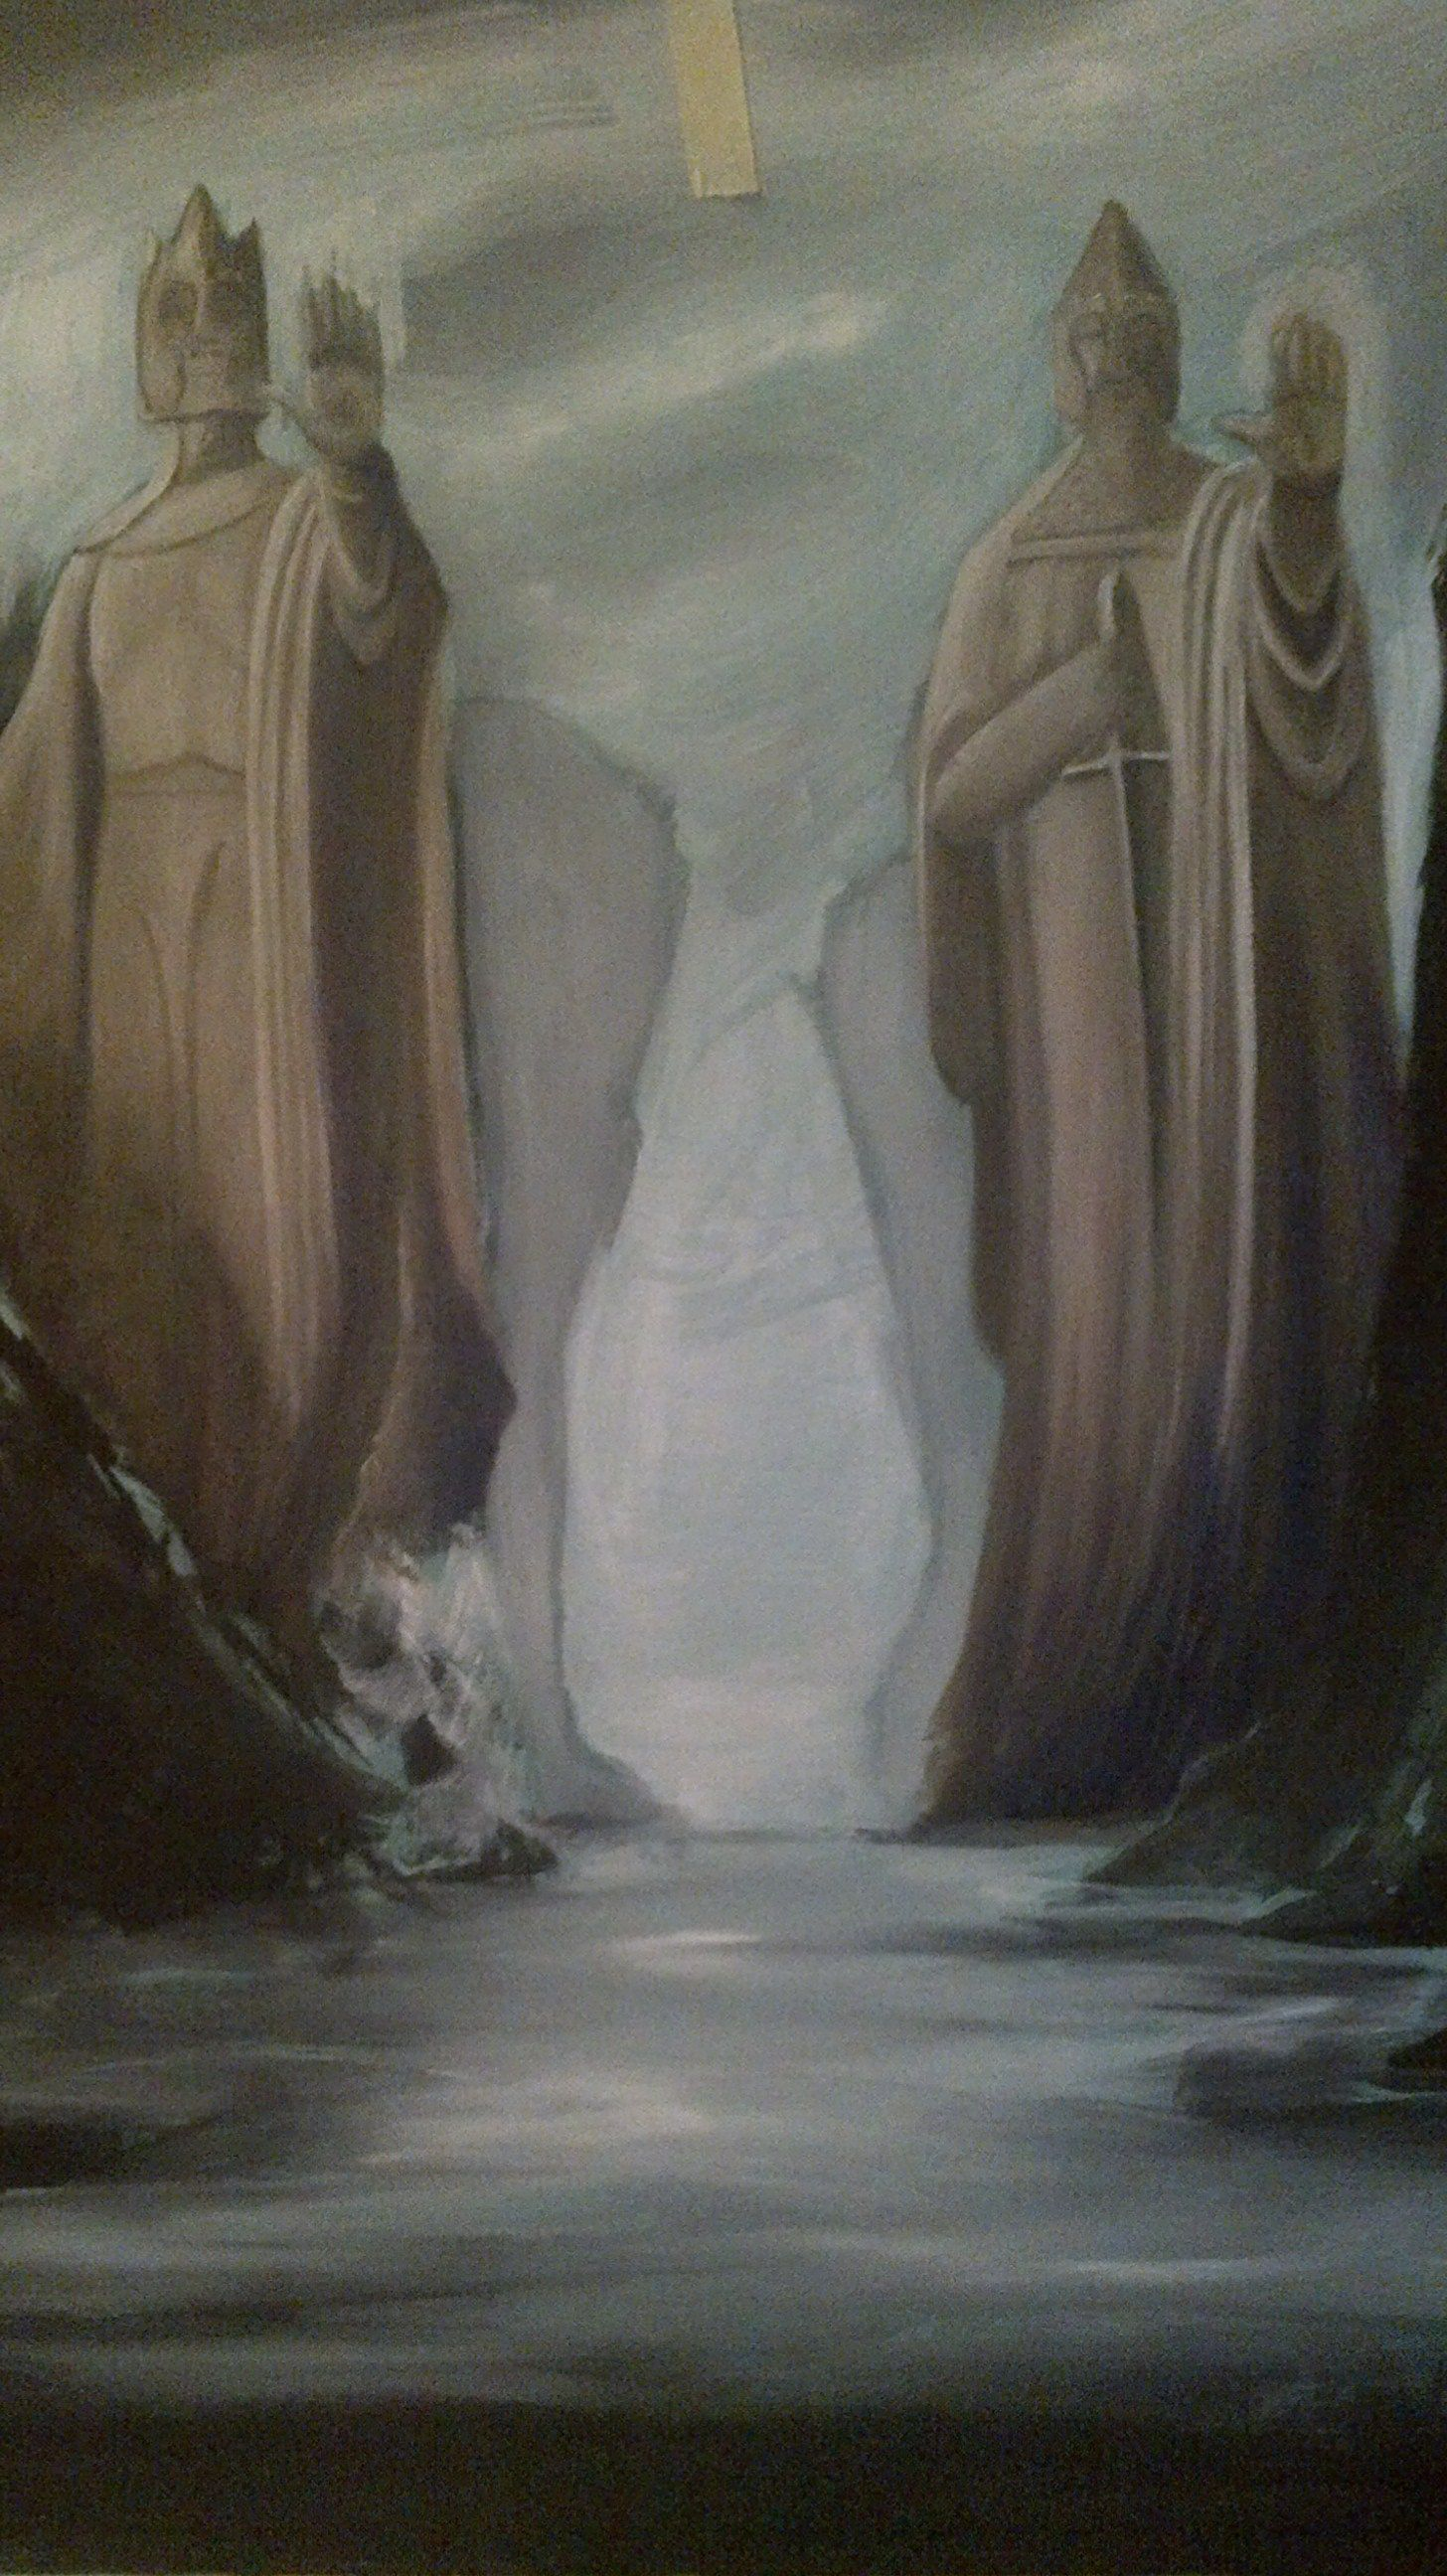 The Argonath